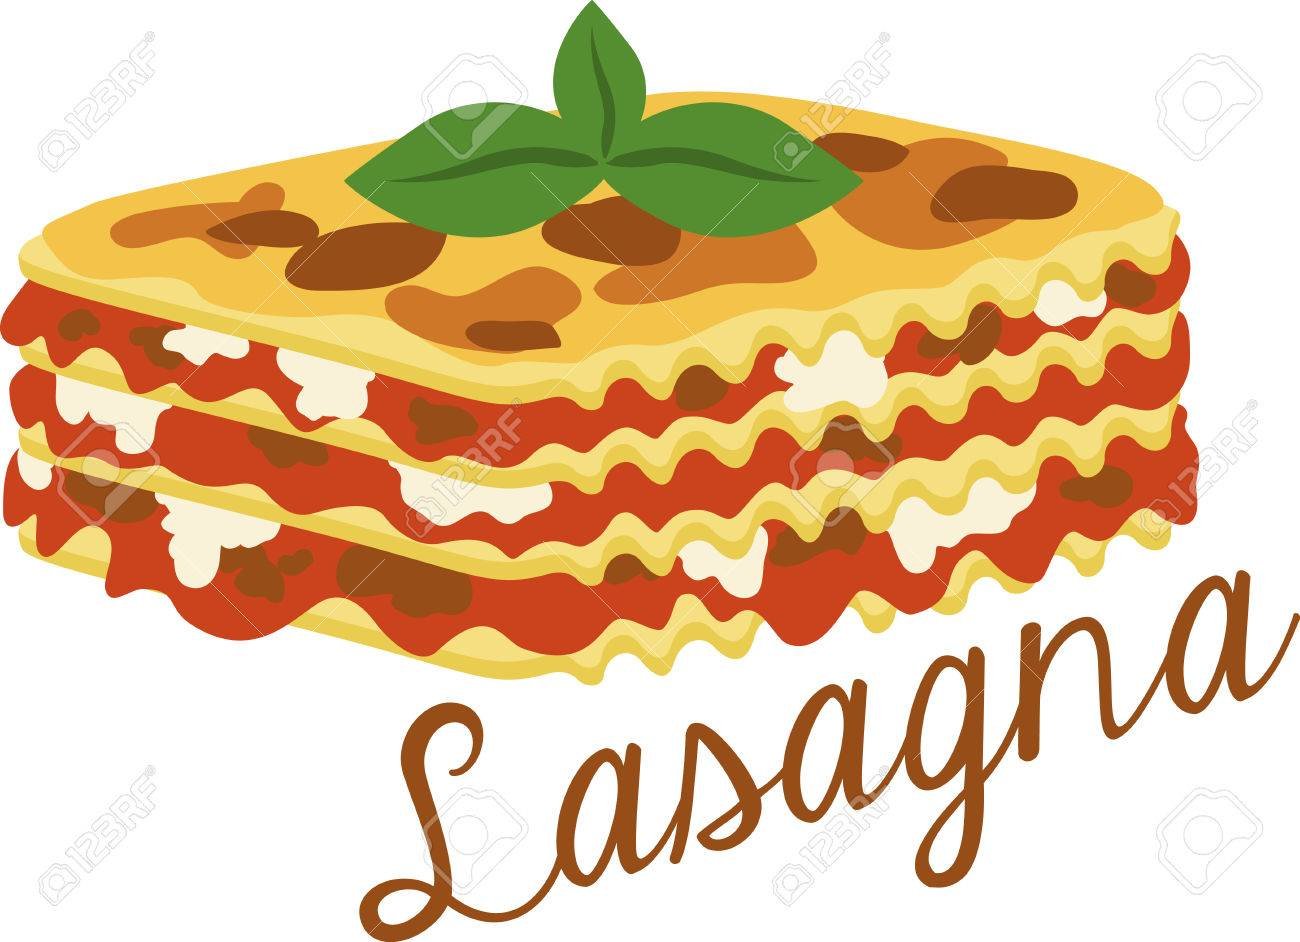 What a cool design of lasagna! This would be great on an apron...